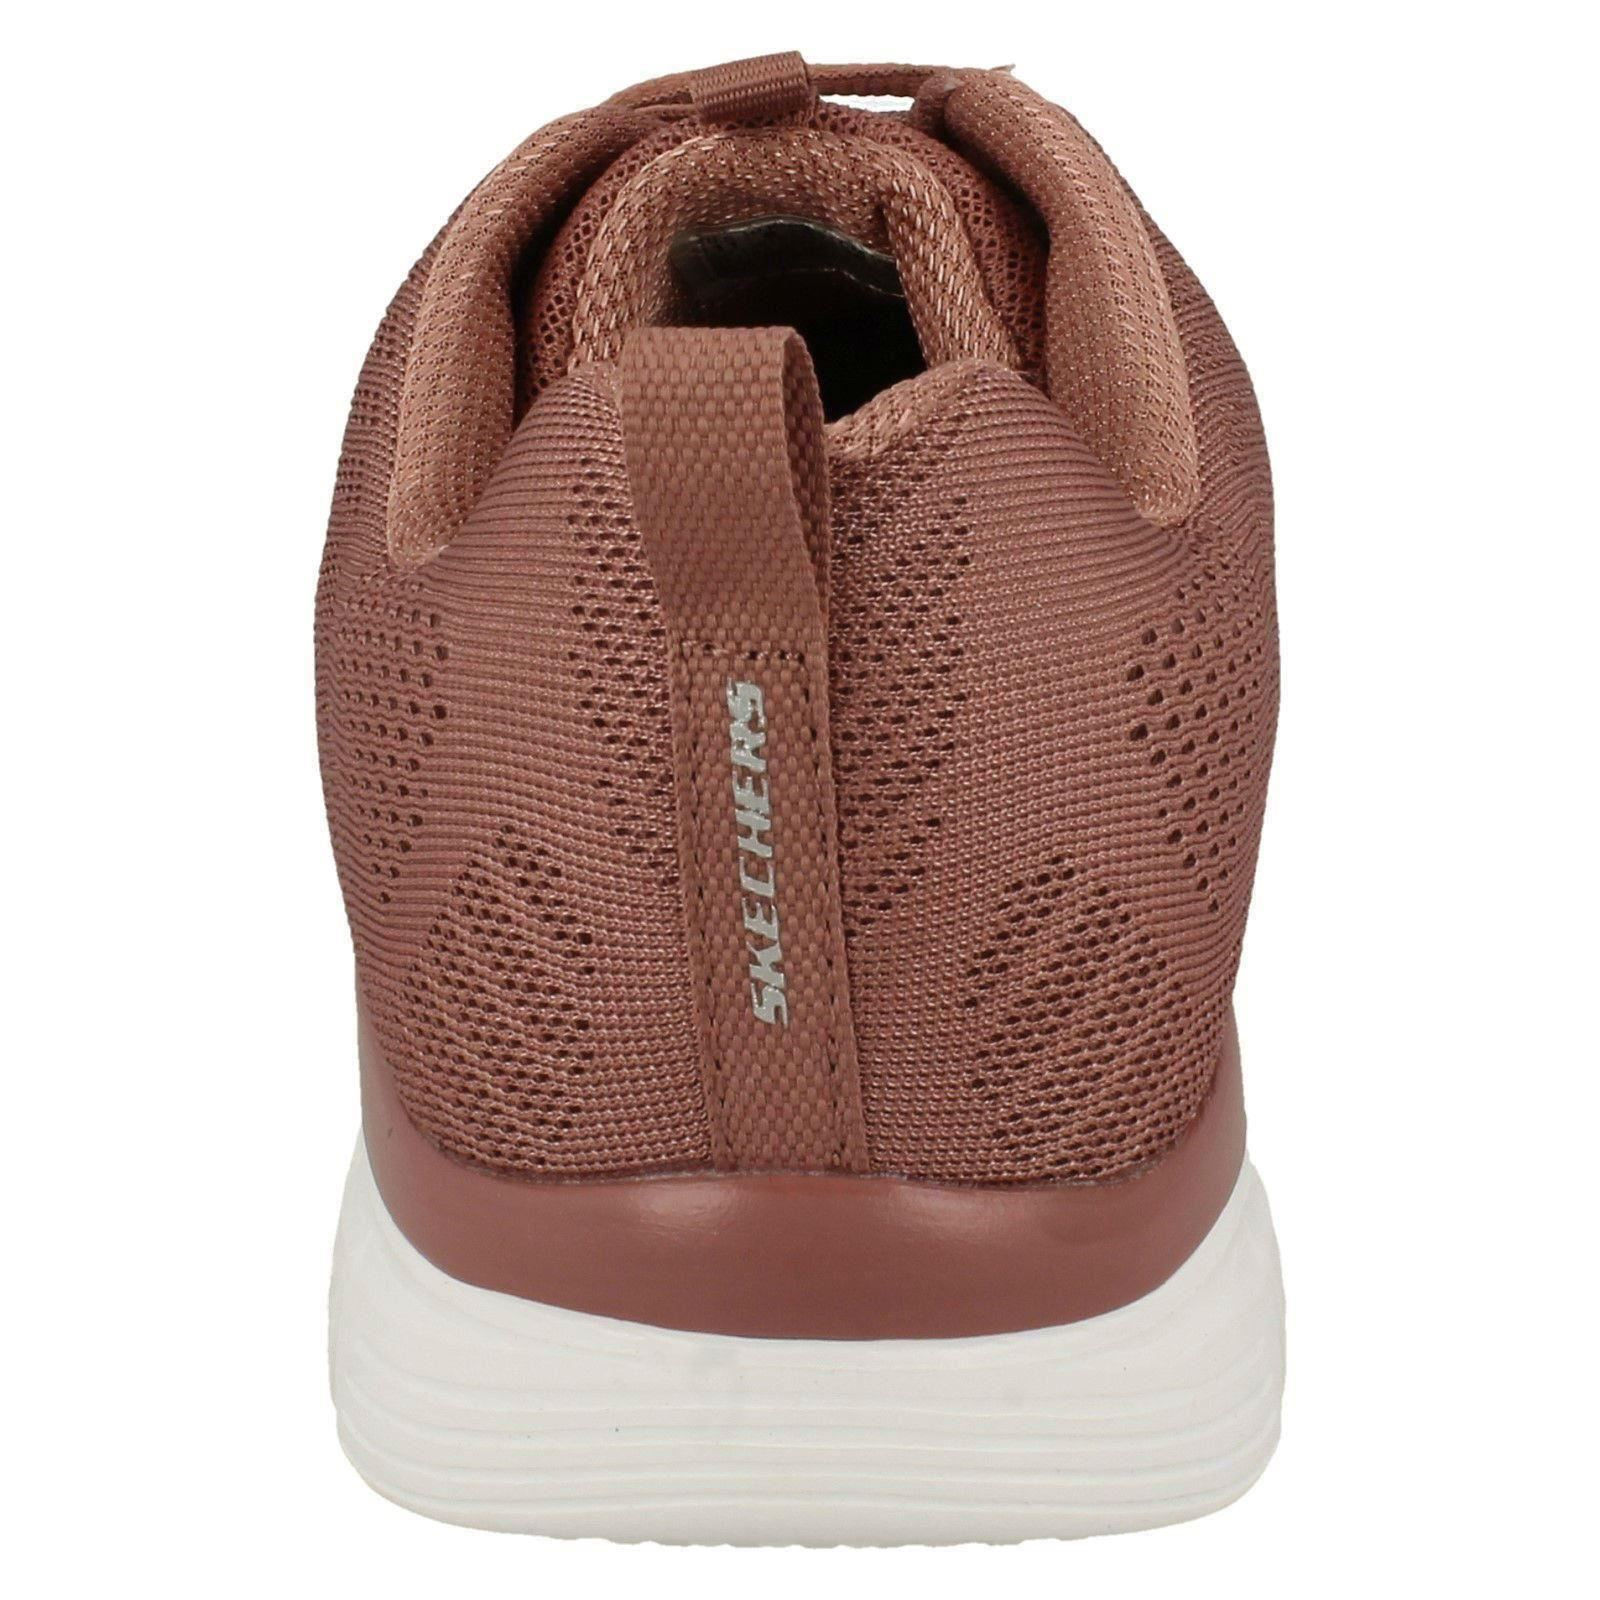 Skechers malva de Trainers Lace Casual Las rosa color Up señoras Textile se Everyday conectan Cvw7q57